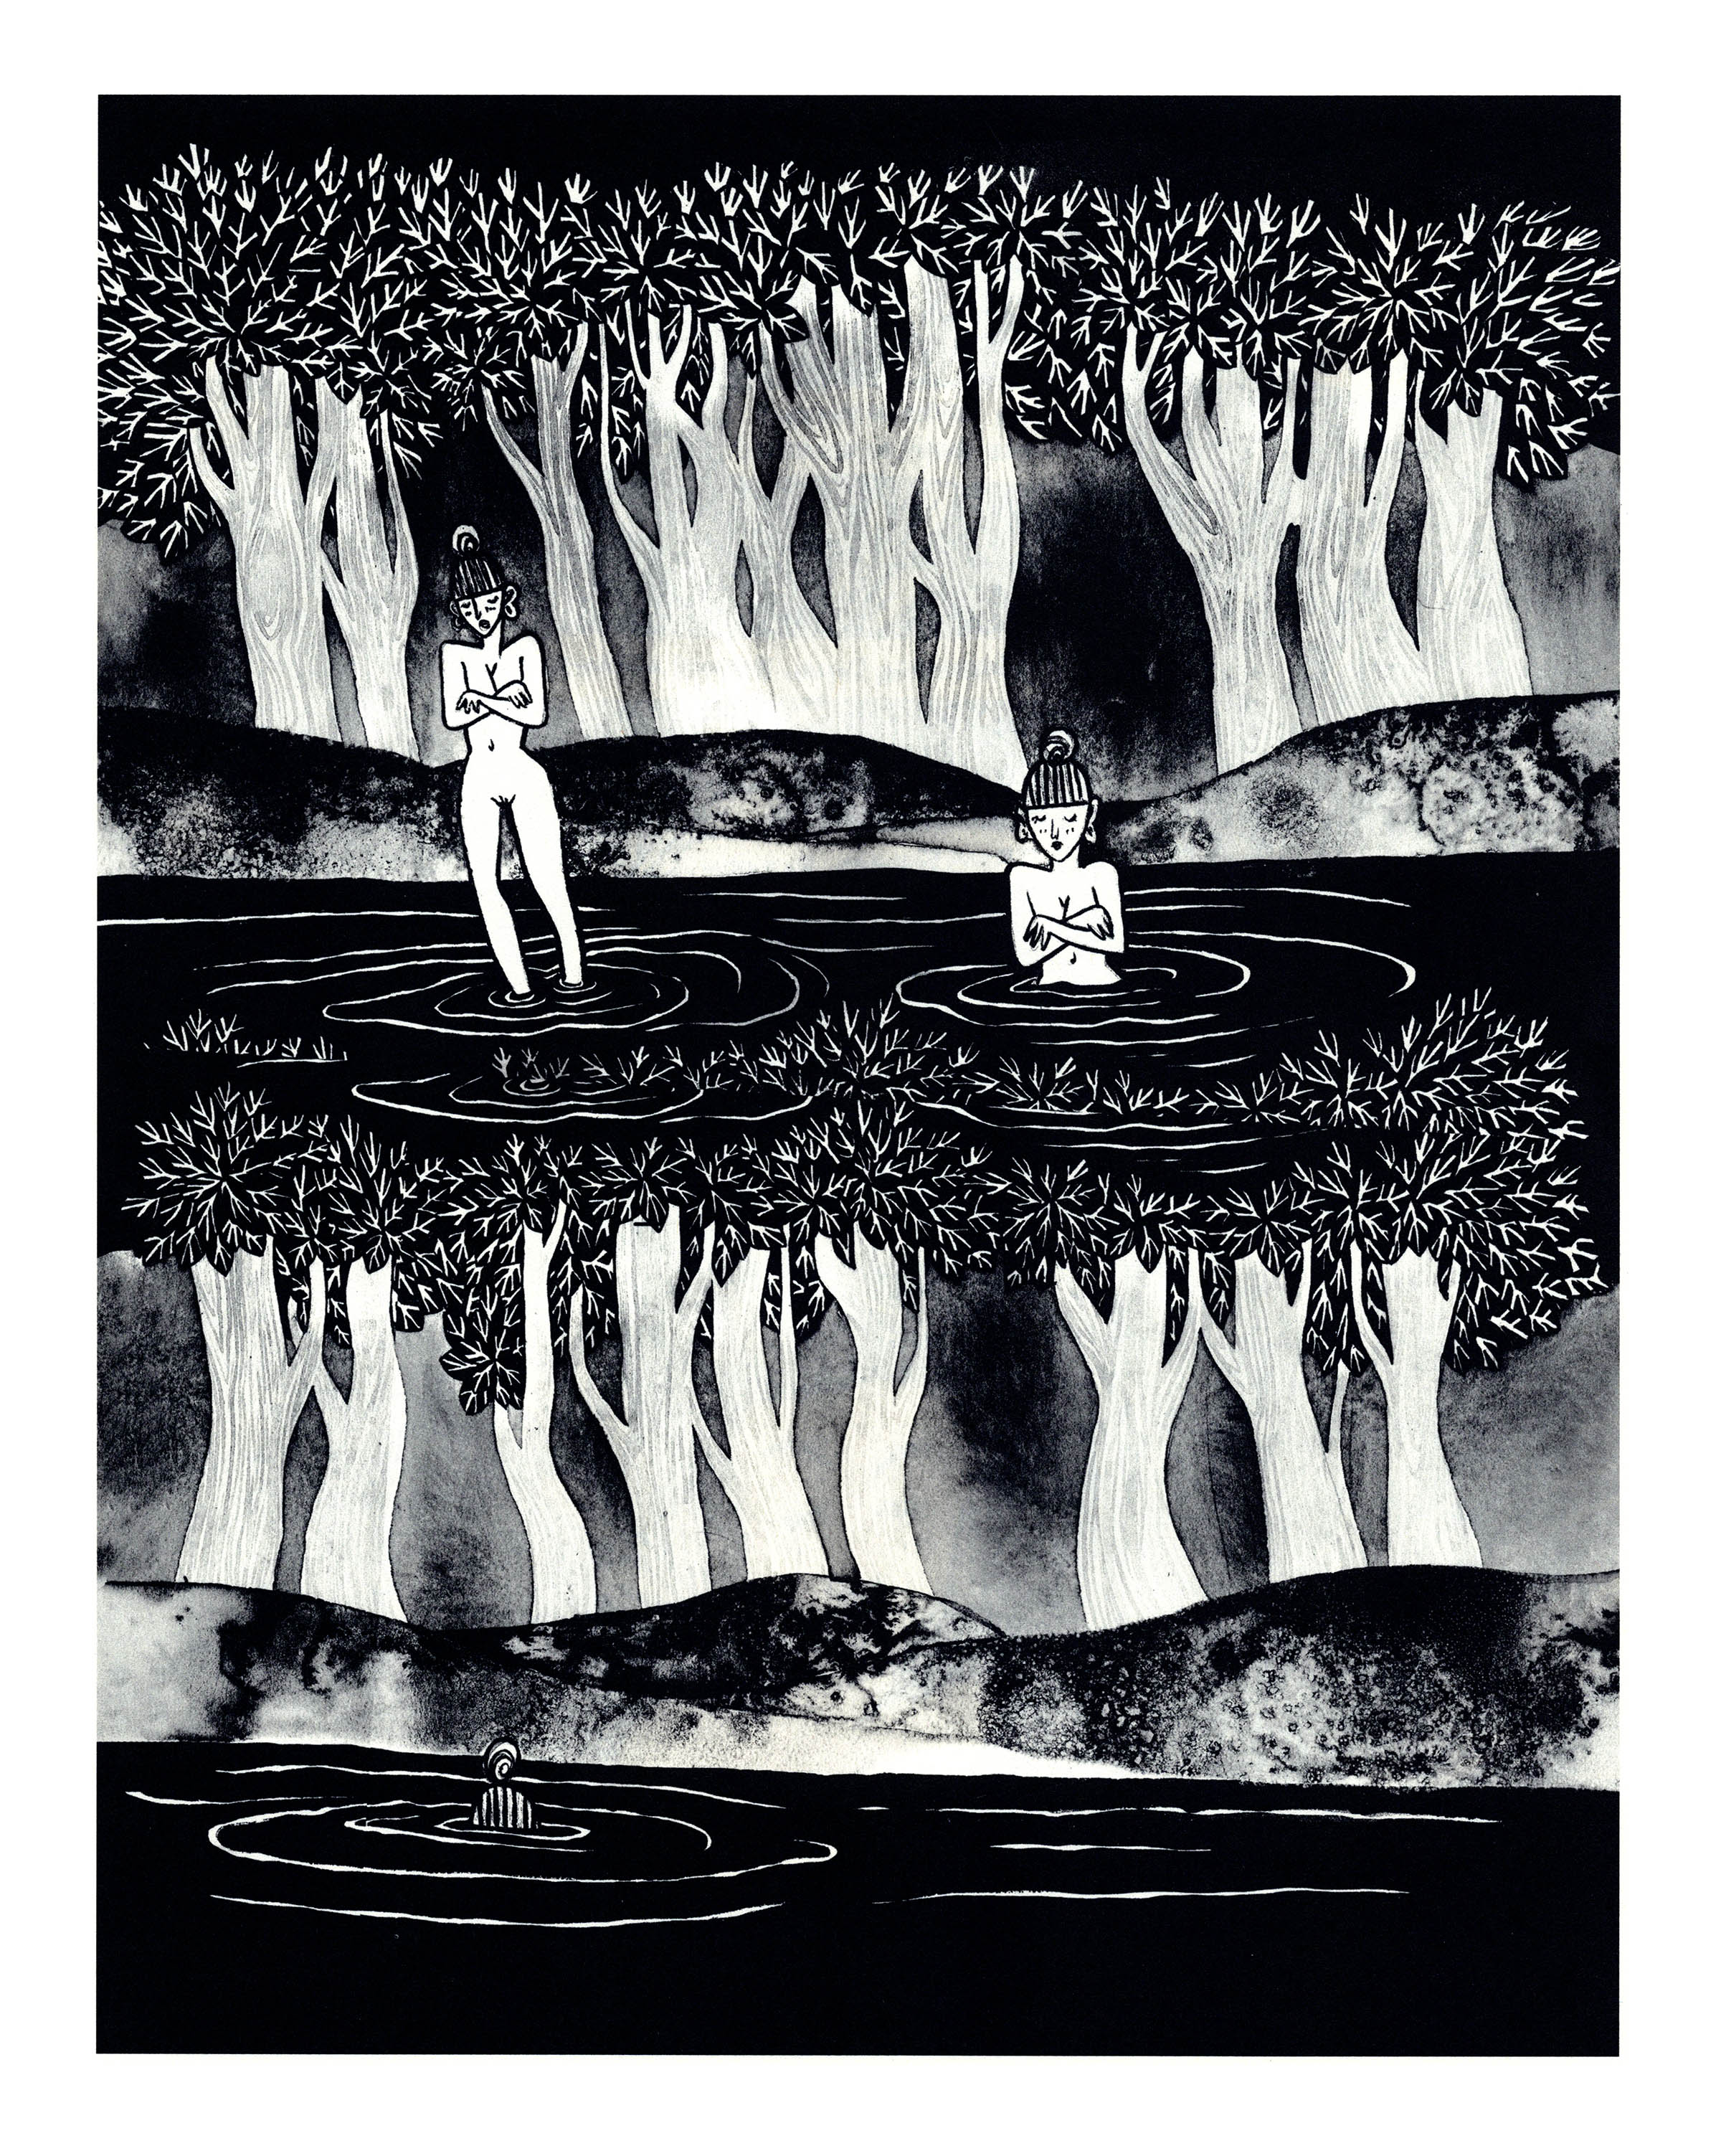 A black and white illustration of two tree-lined bodies of water, one atop the other. In the top one, two naked women, their hair up, stand in the water, arms crossed over their chests. The ripples they make become the leaves of the lower trees. In the lower lake, the shape that breaks the surface is a spiral on top of a striped mound.